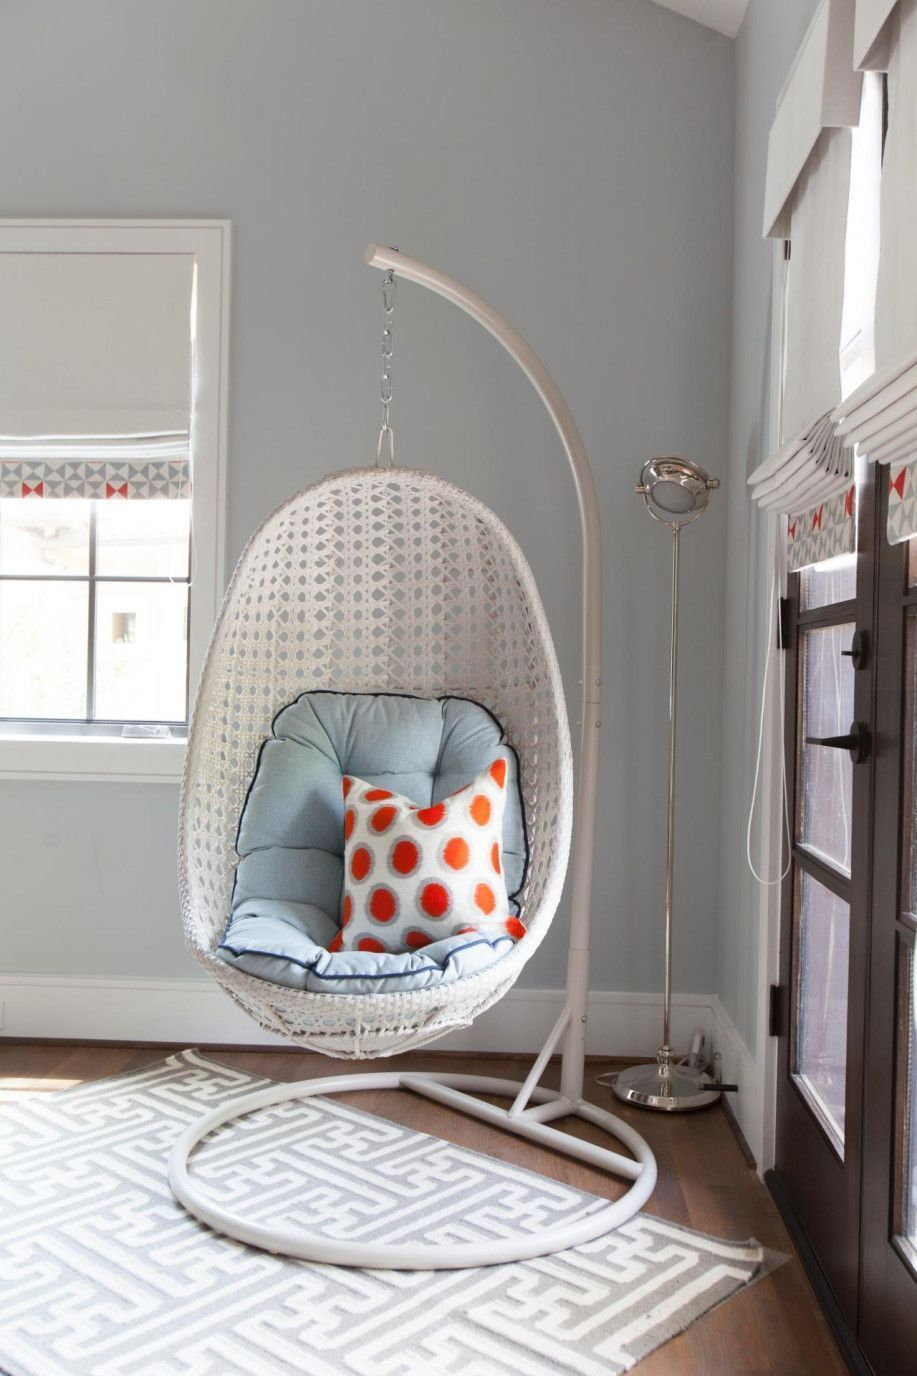 78 Swinging Chair For Bedroom Interior Design Ideas Bedroom Check More At Http Grobyk Com Swingi Swing Chair For Bedroom Swing Chair Bedroom Bedroom Swing